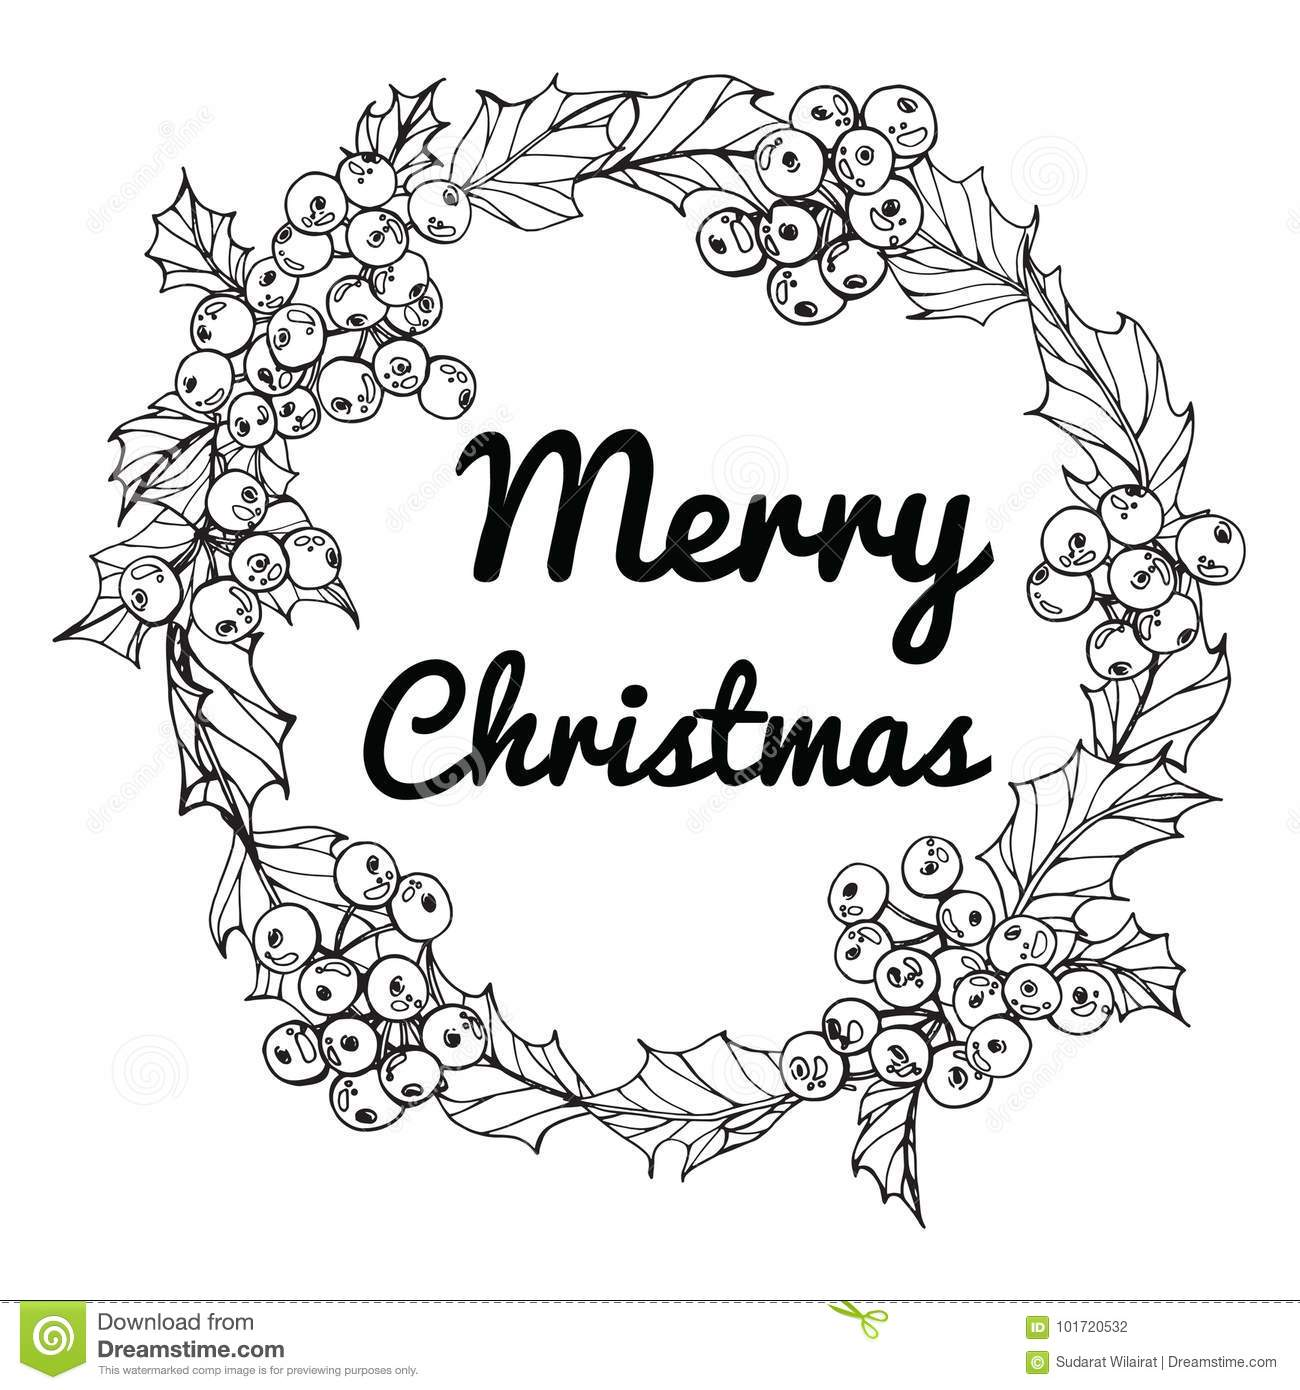 Christmas Day Drawing Images.Wreath For Merry Christmas Day Stock Illustration